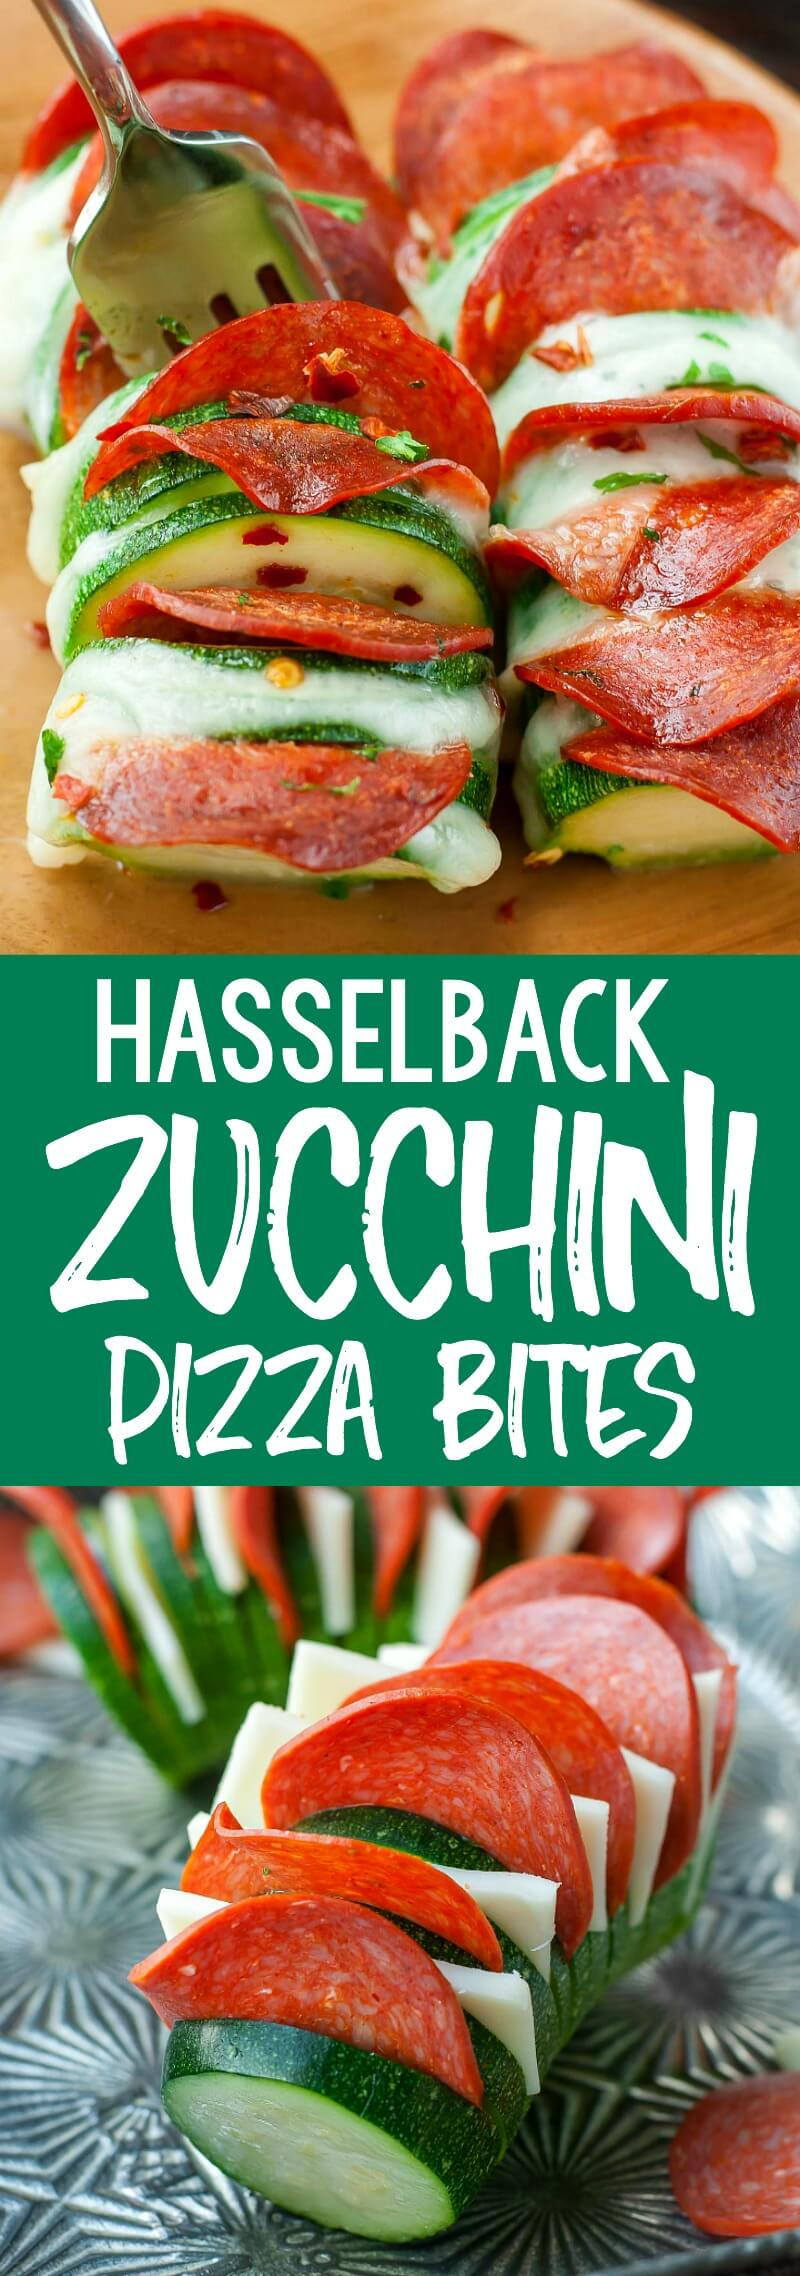 Skip the crust and grab a zucchini! These Cheesy Hasselback Zucchini Pizzas are guaranteed to impress and SO easy to make! #pizza #zucchini #glutenfree #zucchinipizza #keto #lowcarb